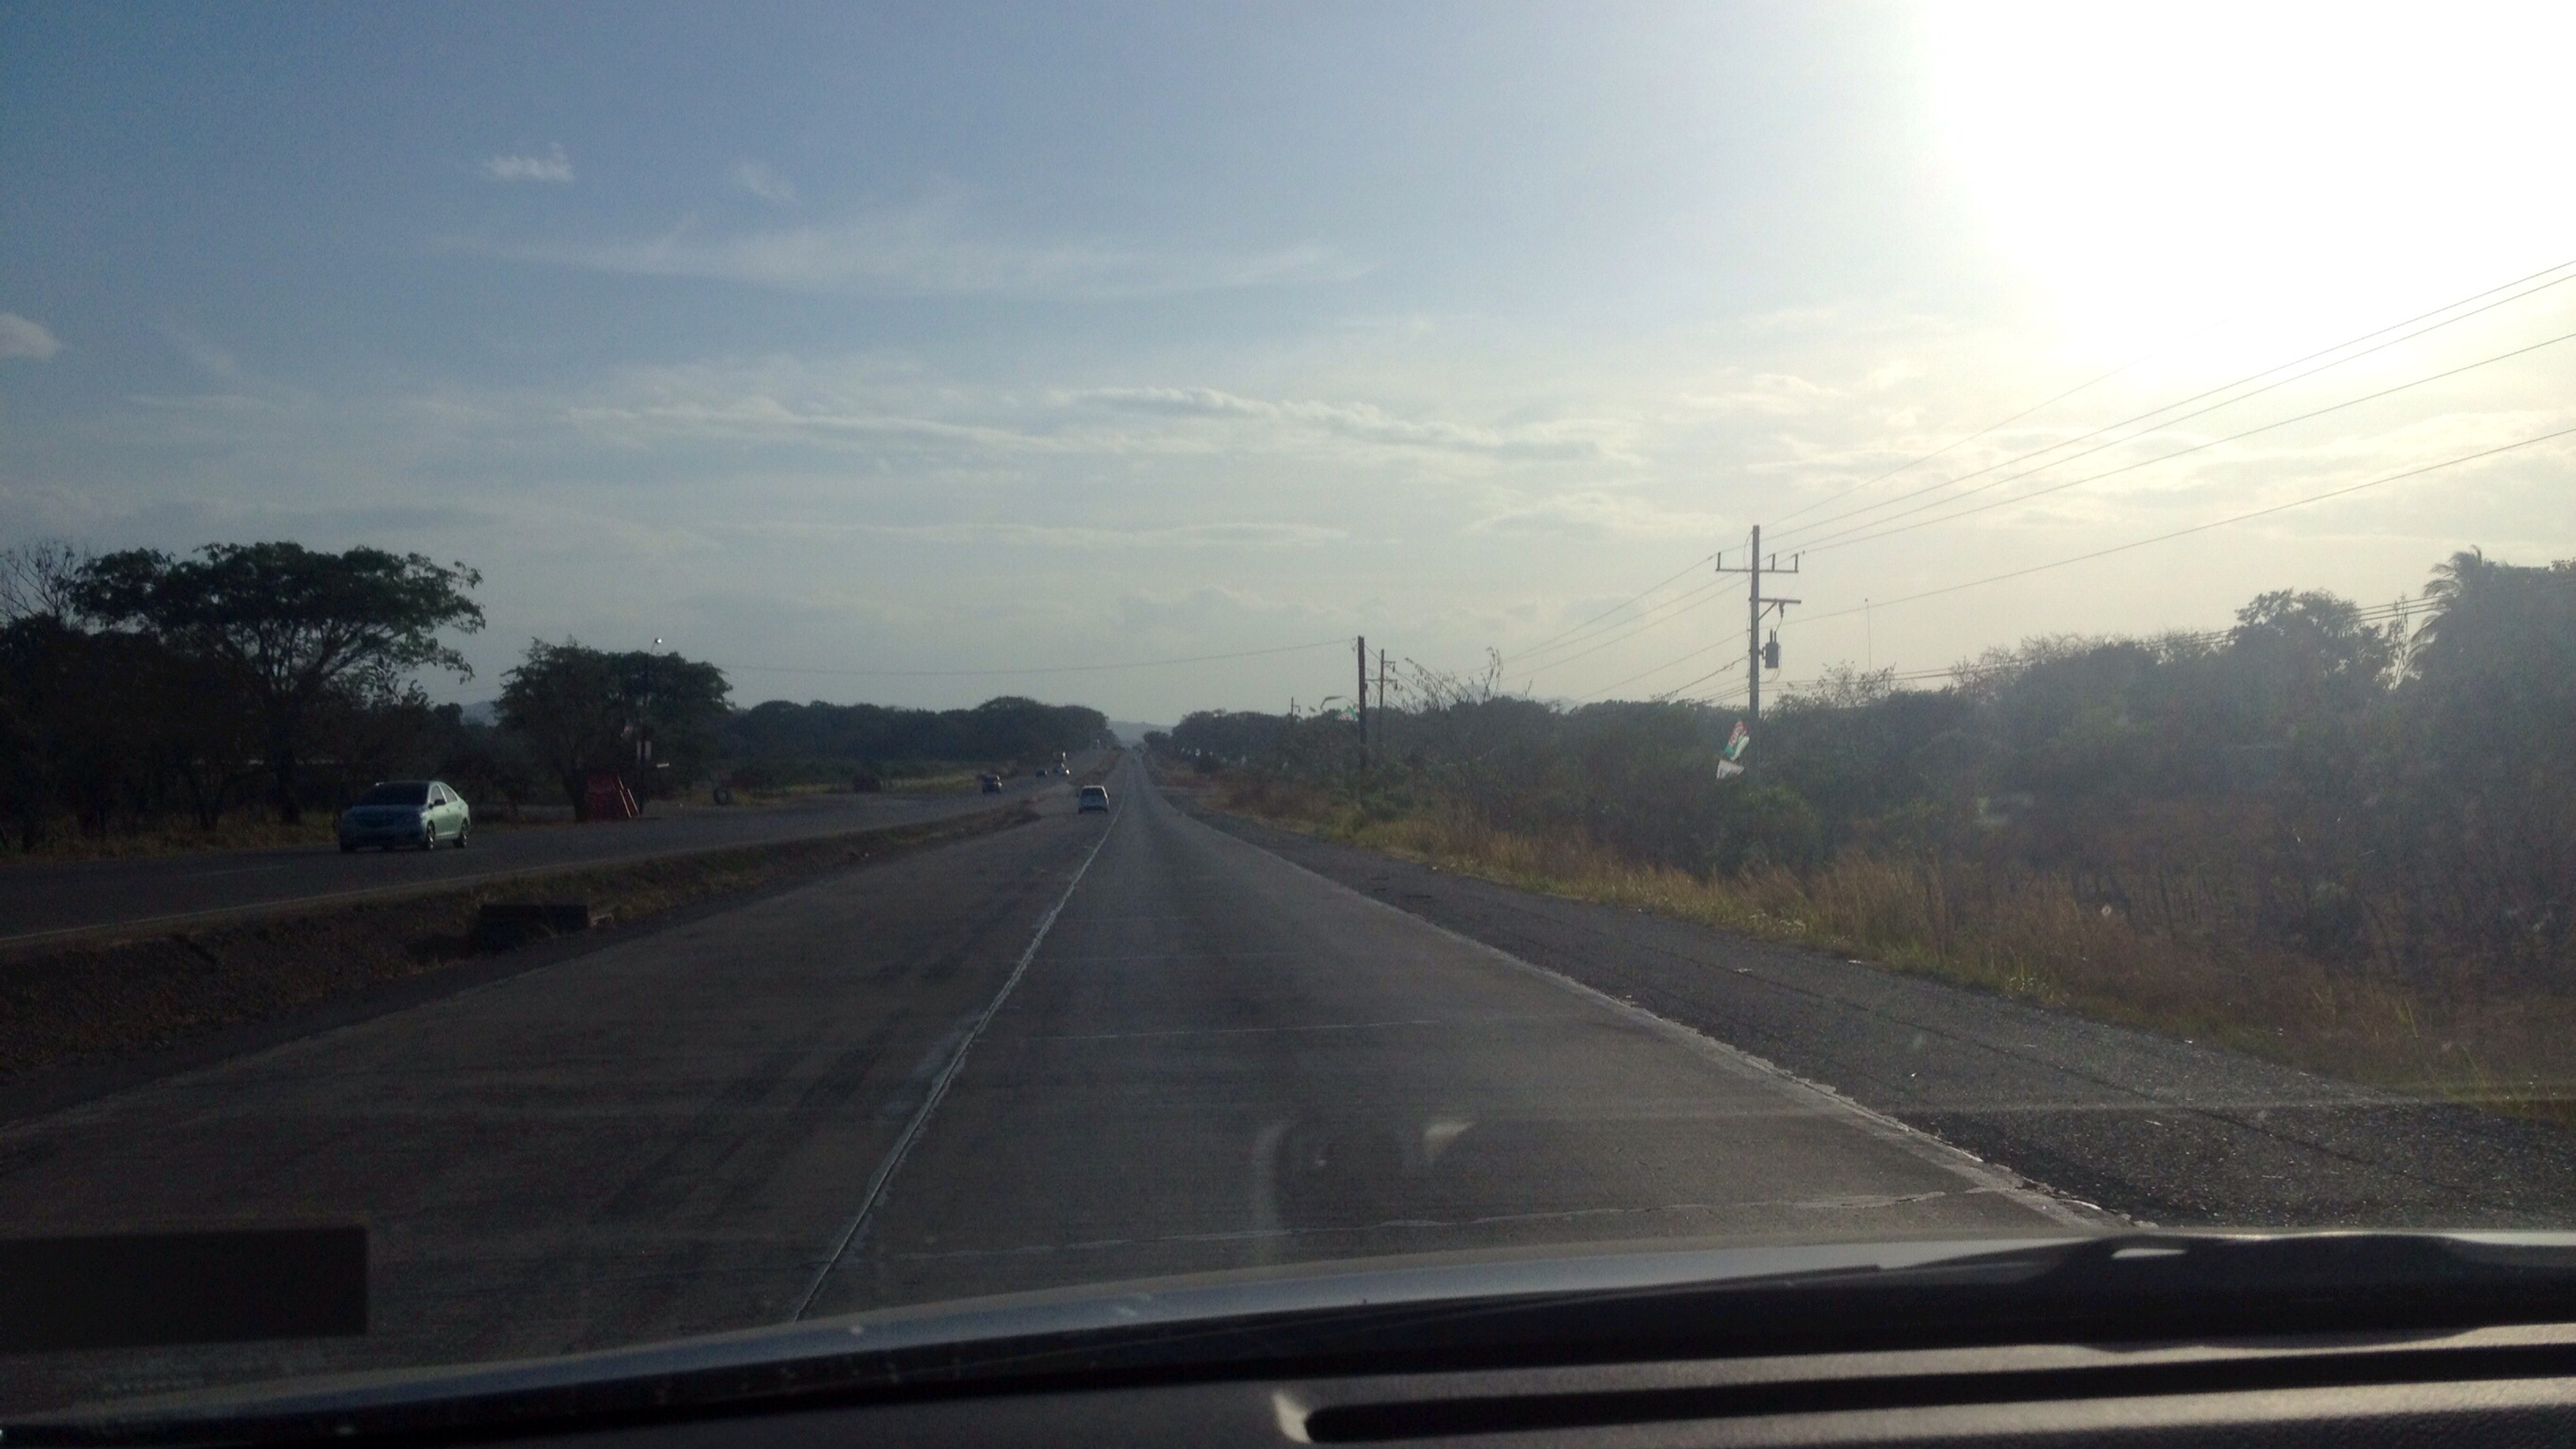 On the road again in Panama